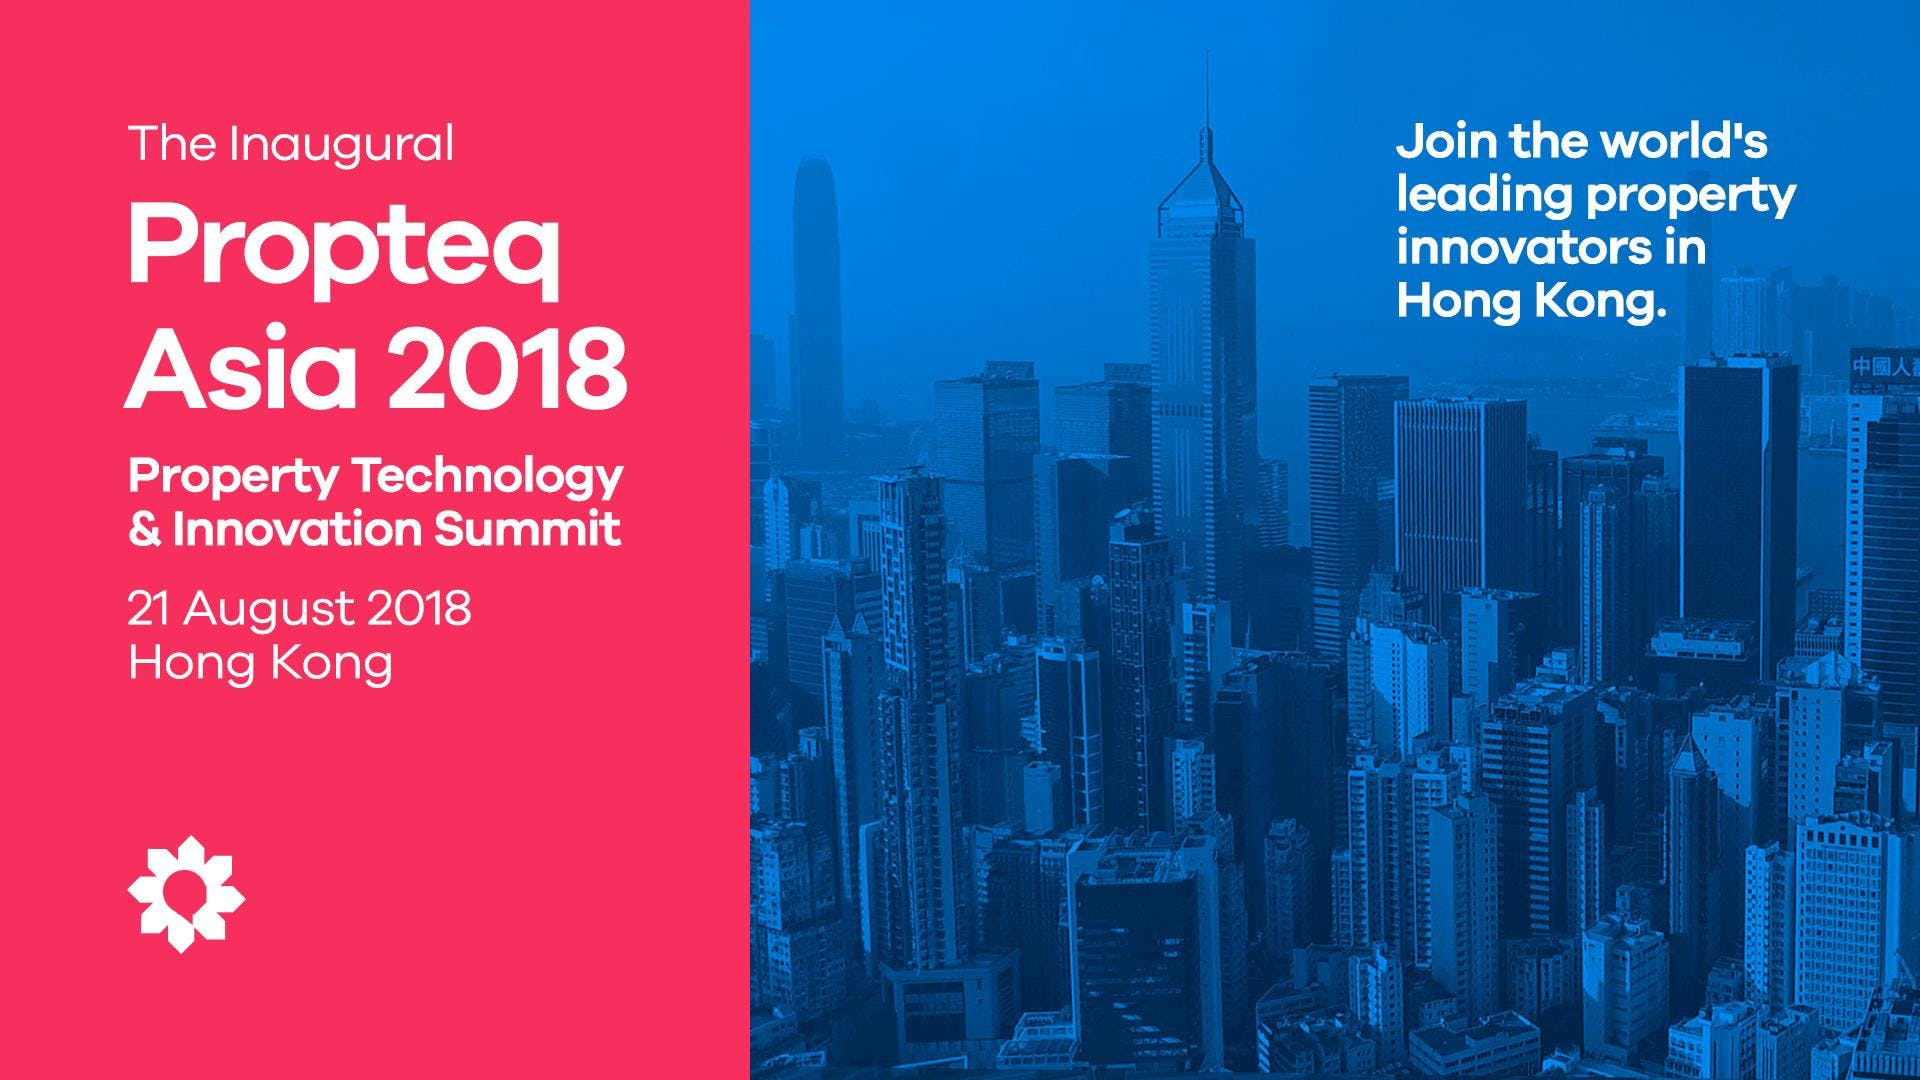 Propteq Asia 2018 - Property Technology and Innovation Summit